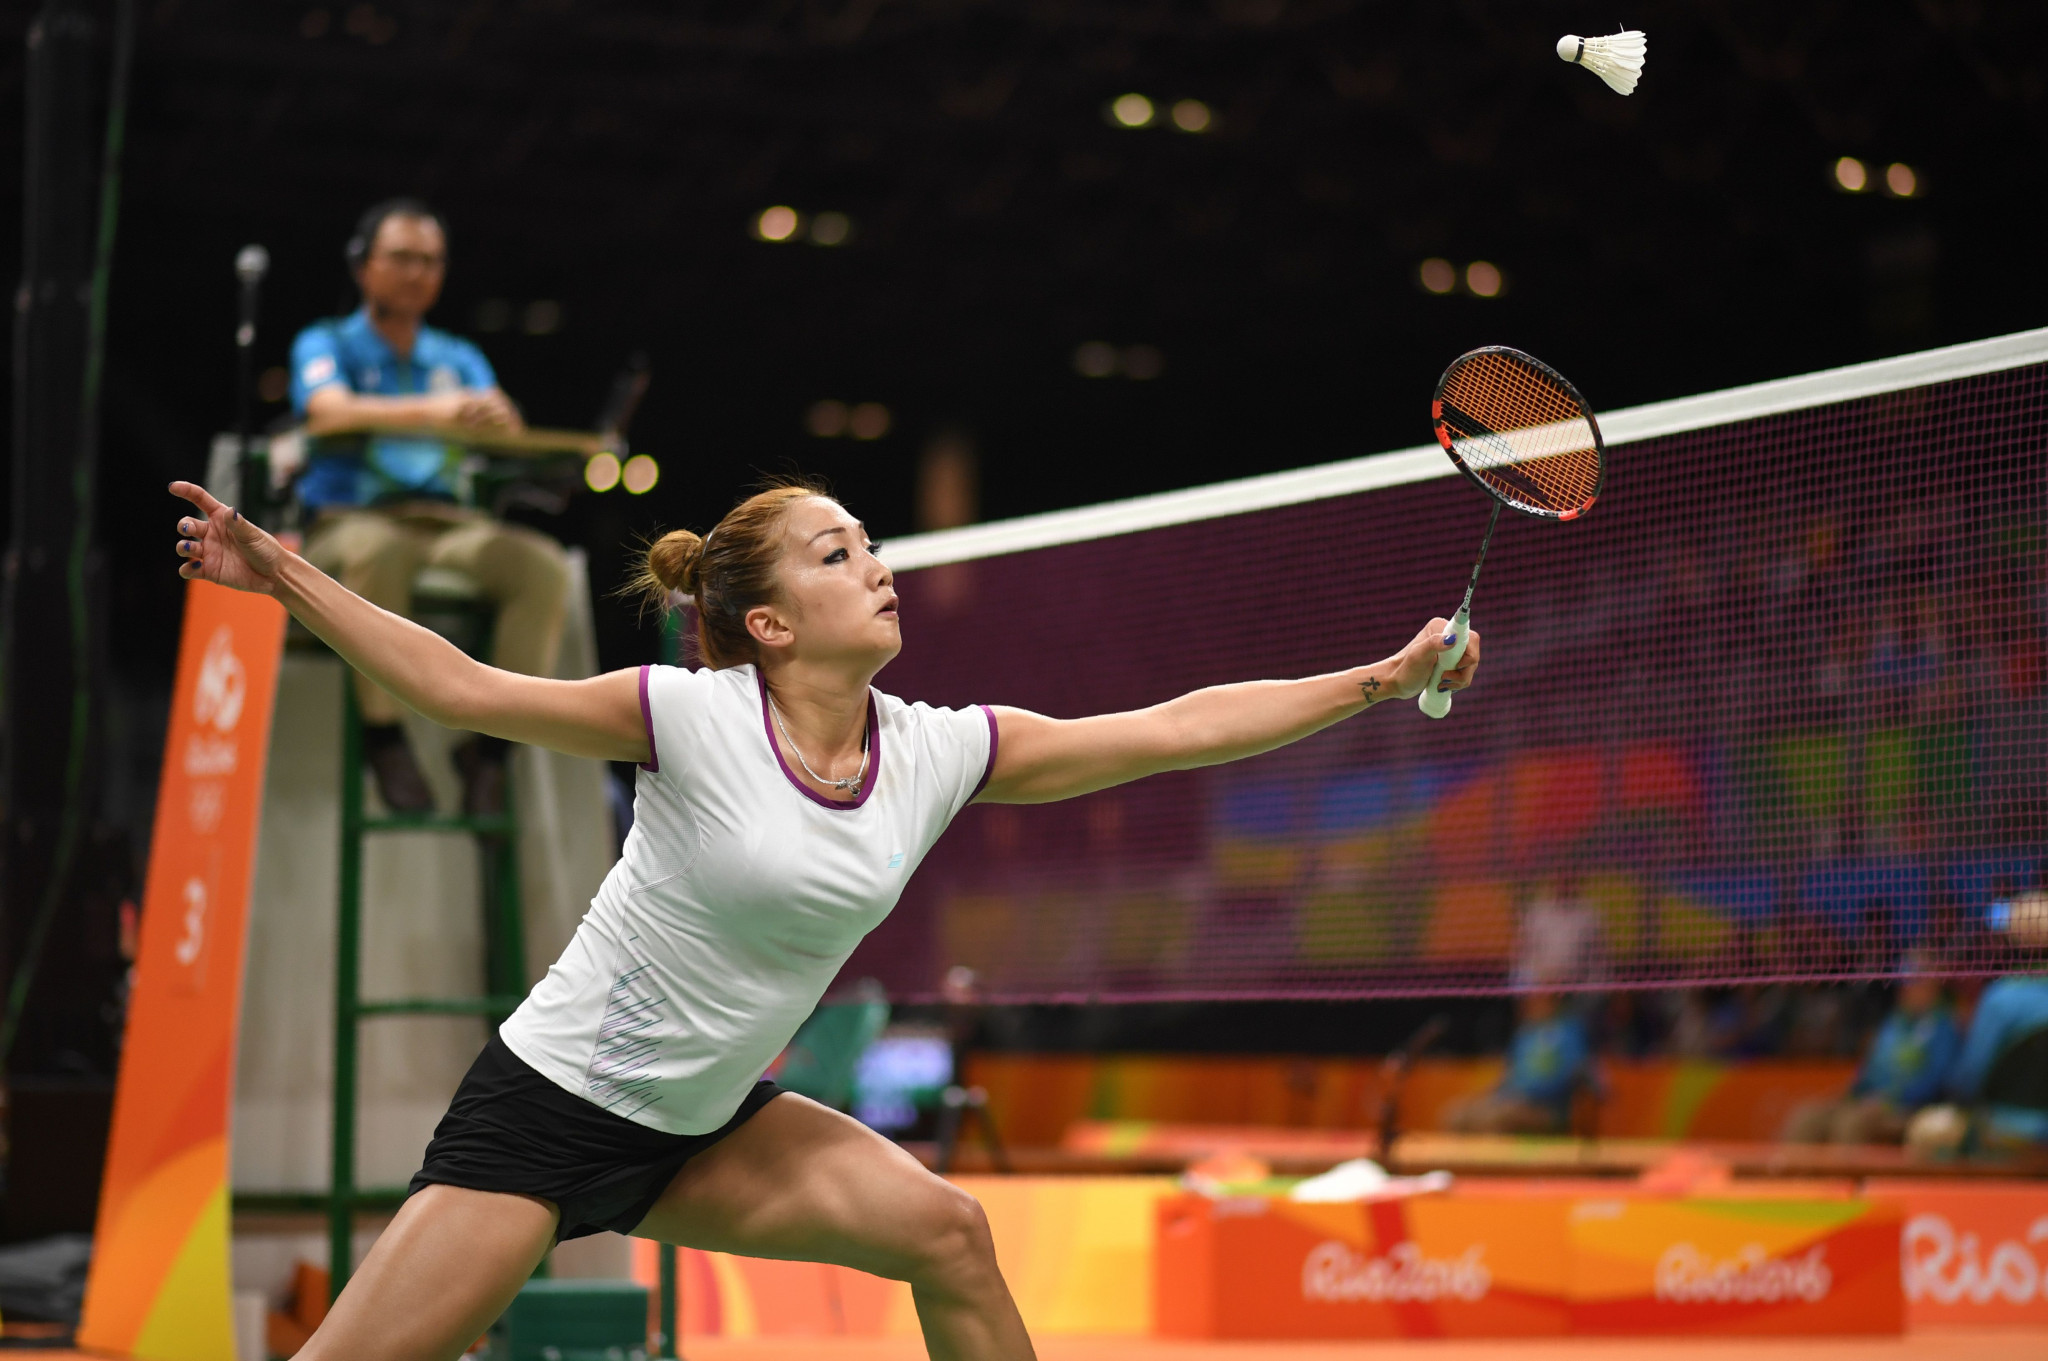 MAURITIUS BADMINTON QUEEN GETS 2-YEAR BAN; TO MISS TOKYO 2020